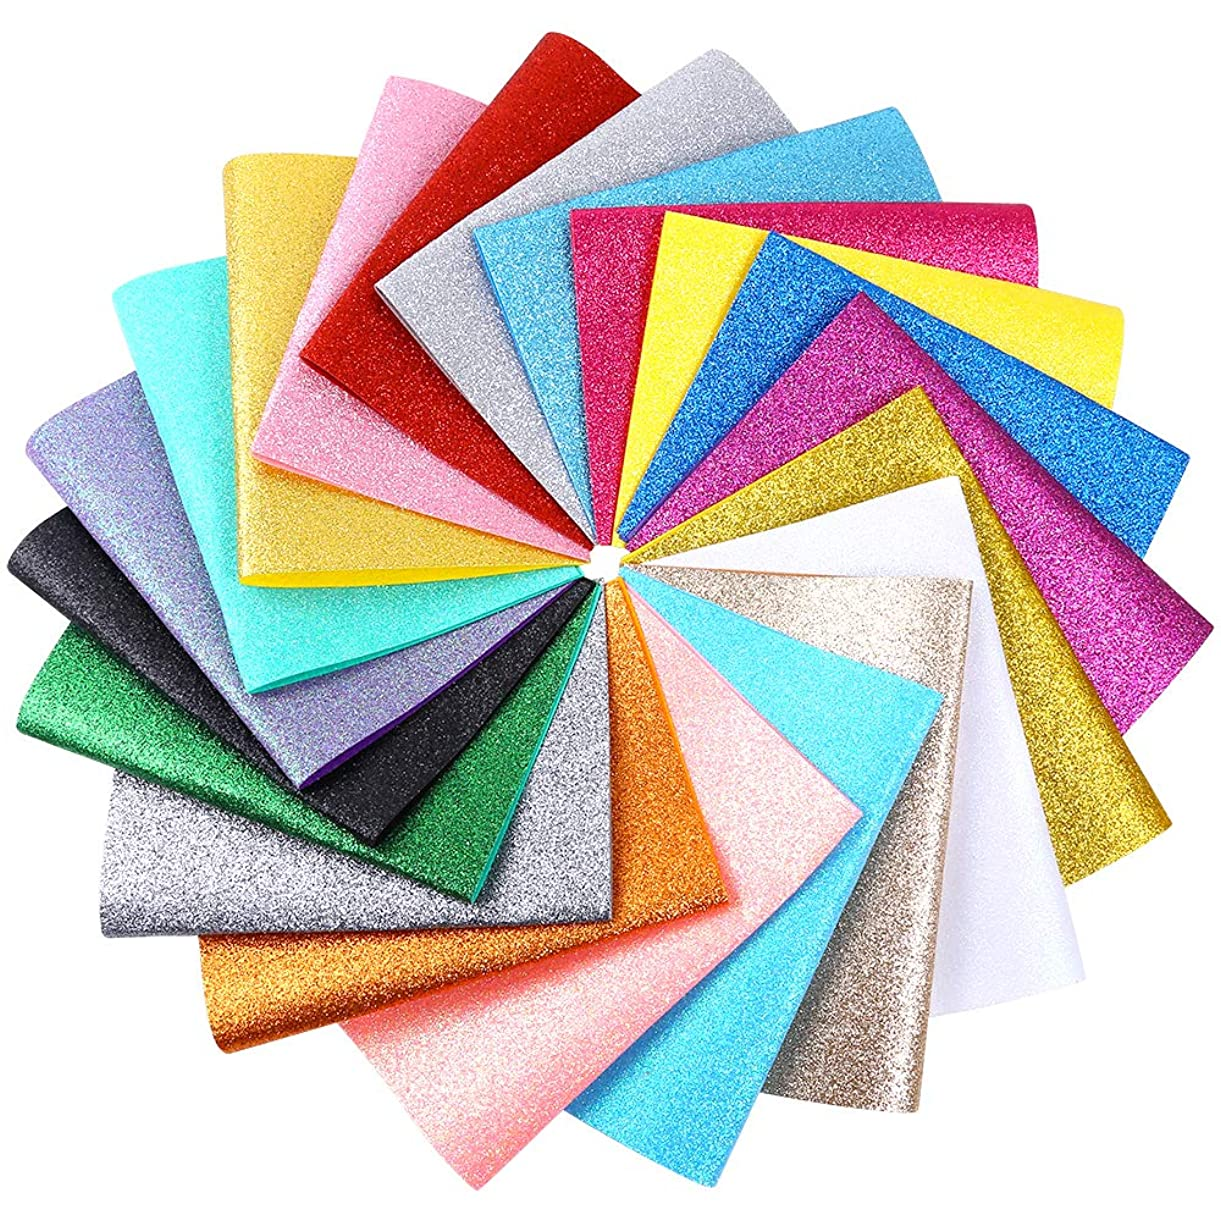 Caydo 20 Pieces 20 Colors Shiny Superfine?Glitter Fabric Glitter Felt Sheets for Bag Making, Hat Making, Hair Crafts Making, Jewelry Making, Sewing and Other Decorations uffpq9688